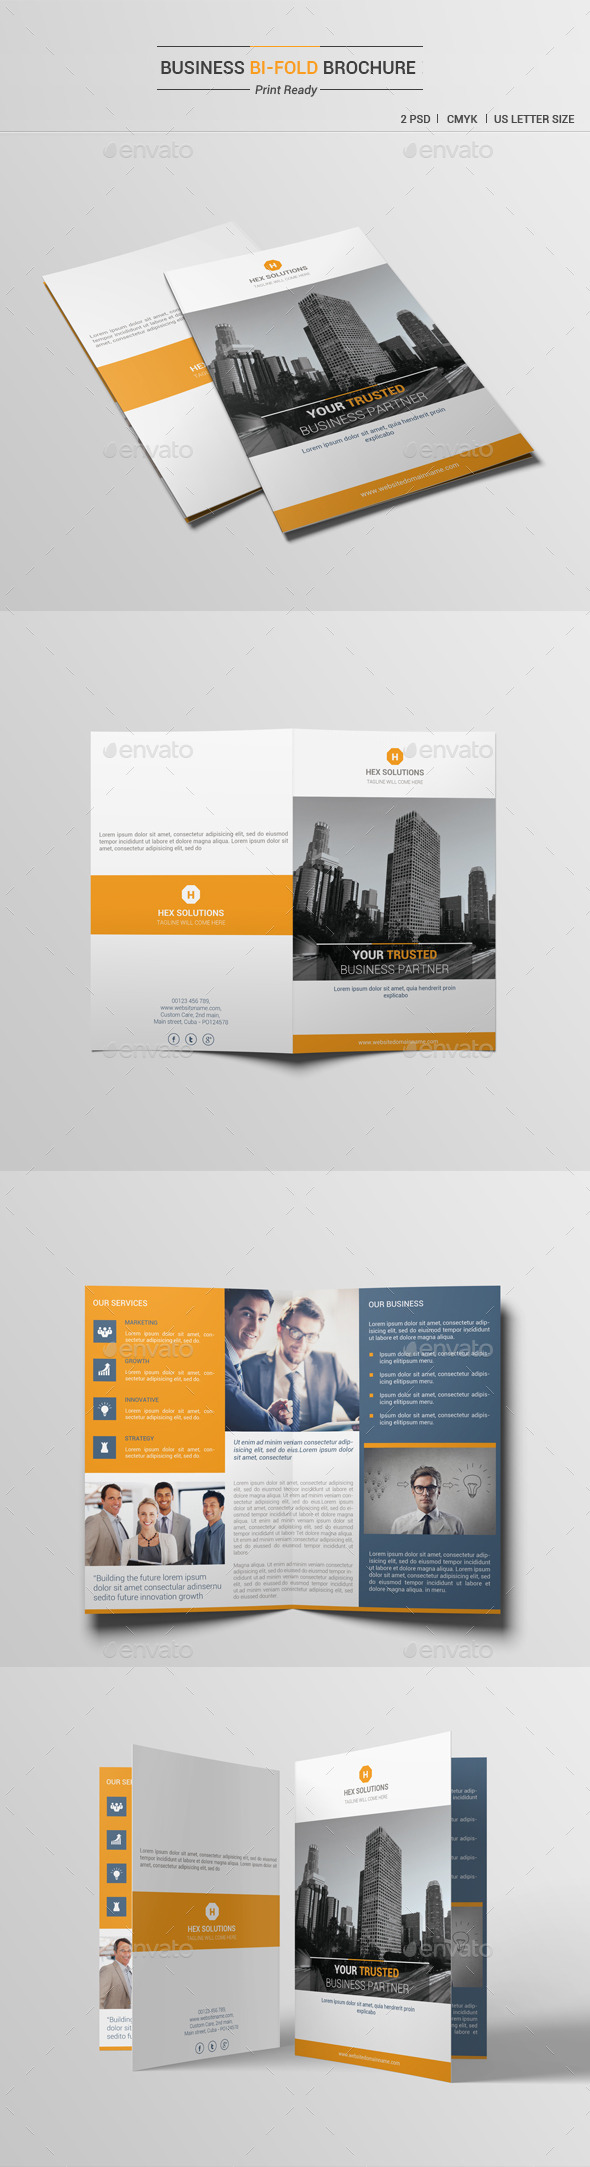 Business Bi-Fold Brochure V1 - Corporate Brochures